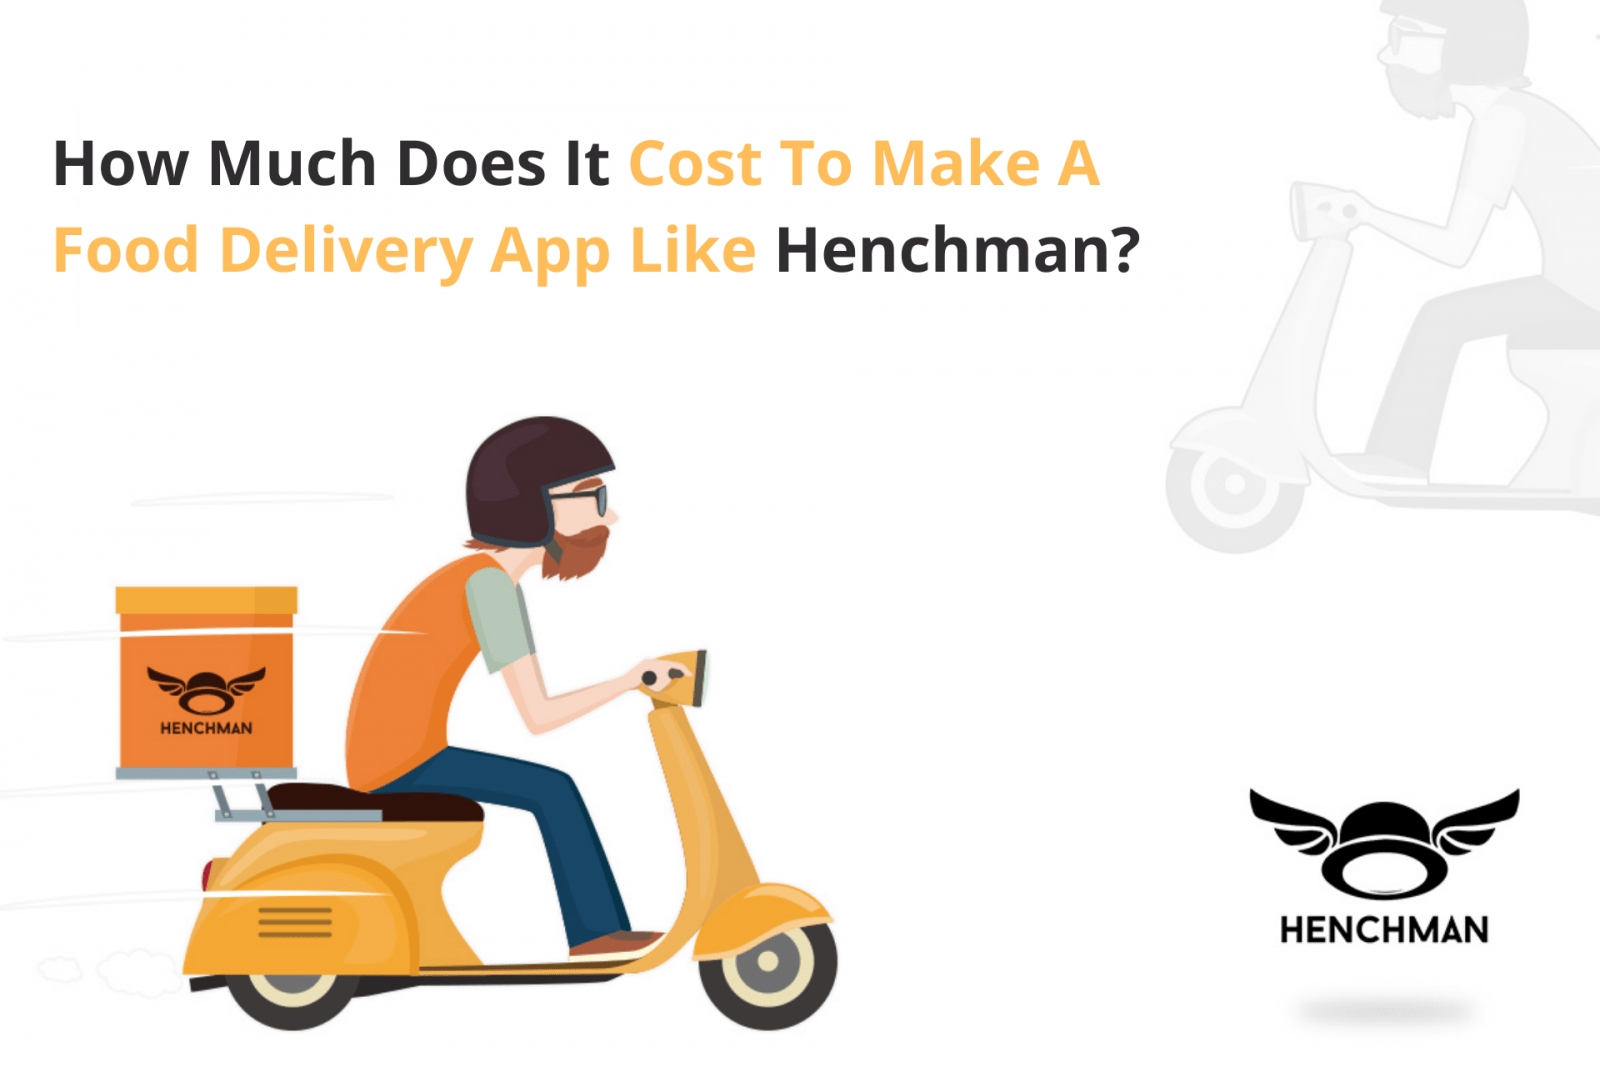 How Much Does It Cost To Make A Food Delivery App Like Henchman?